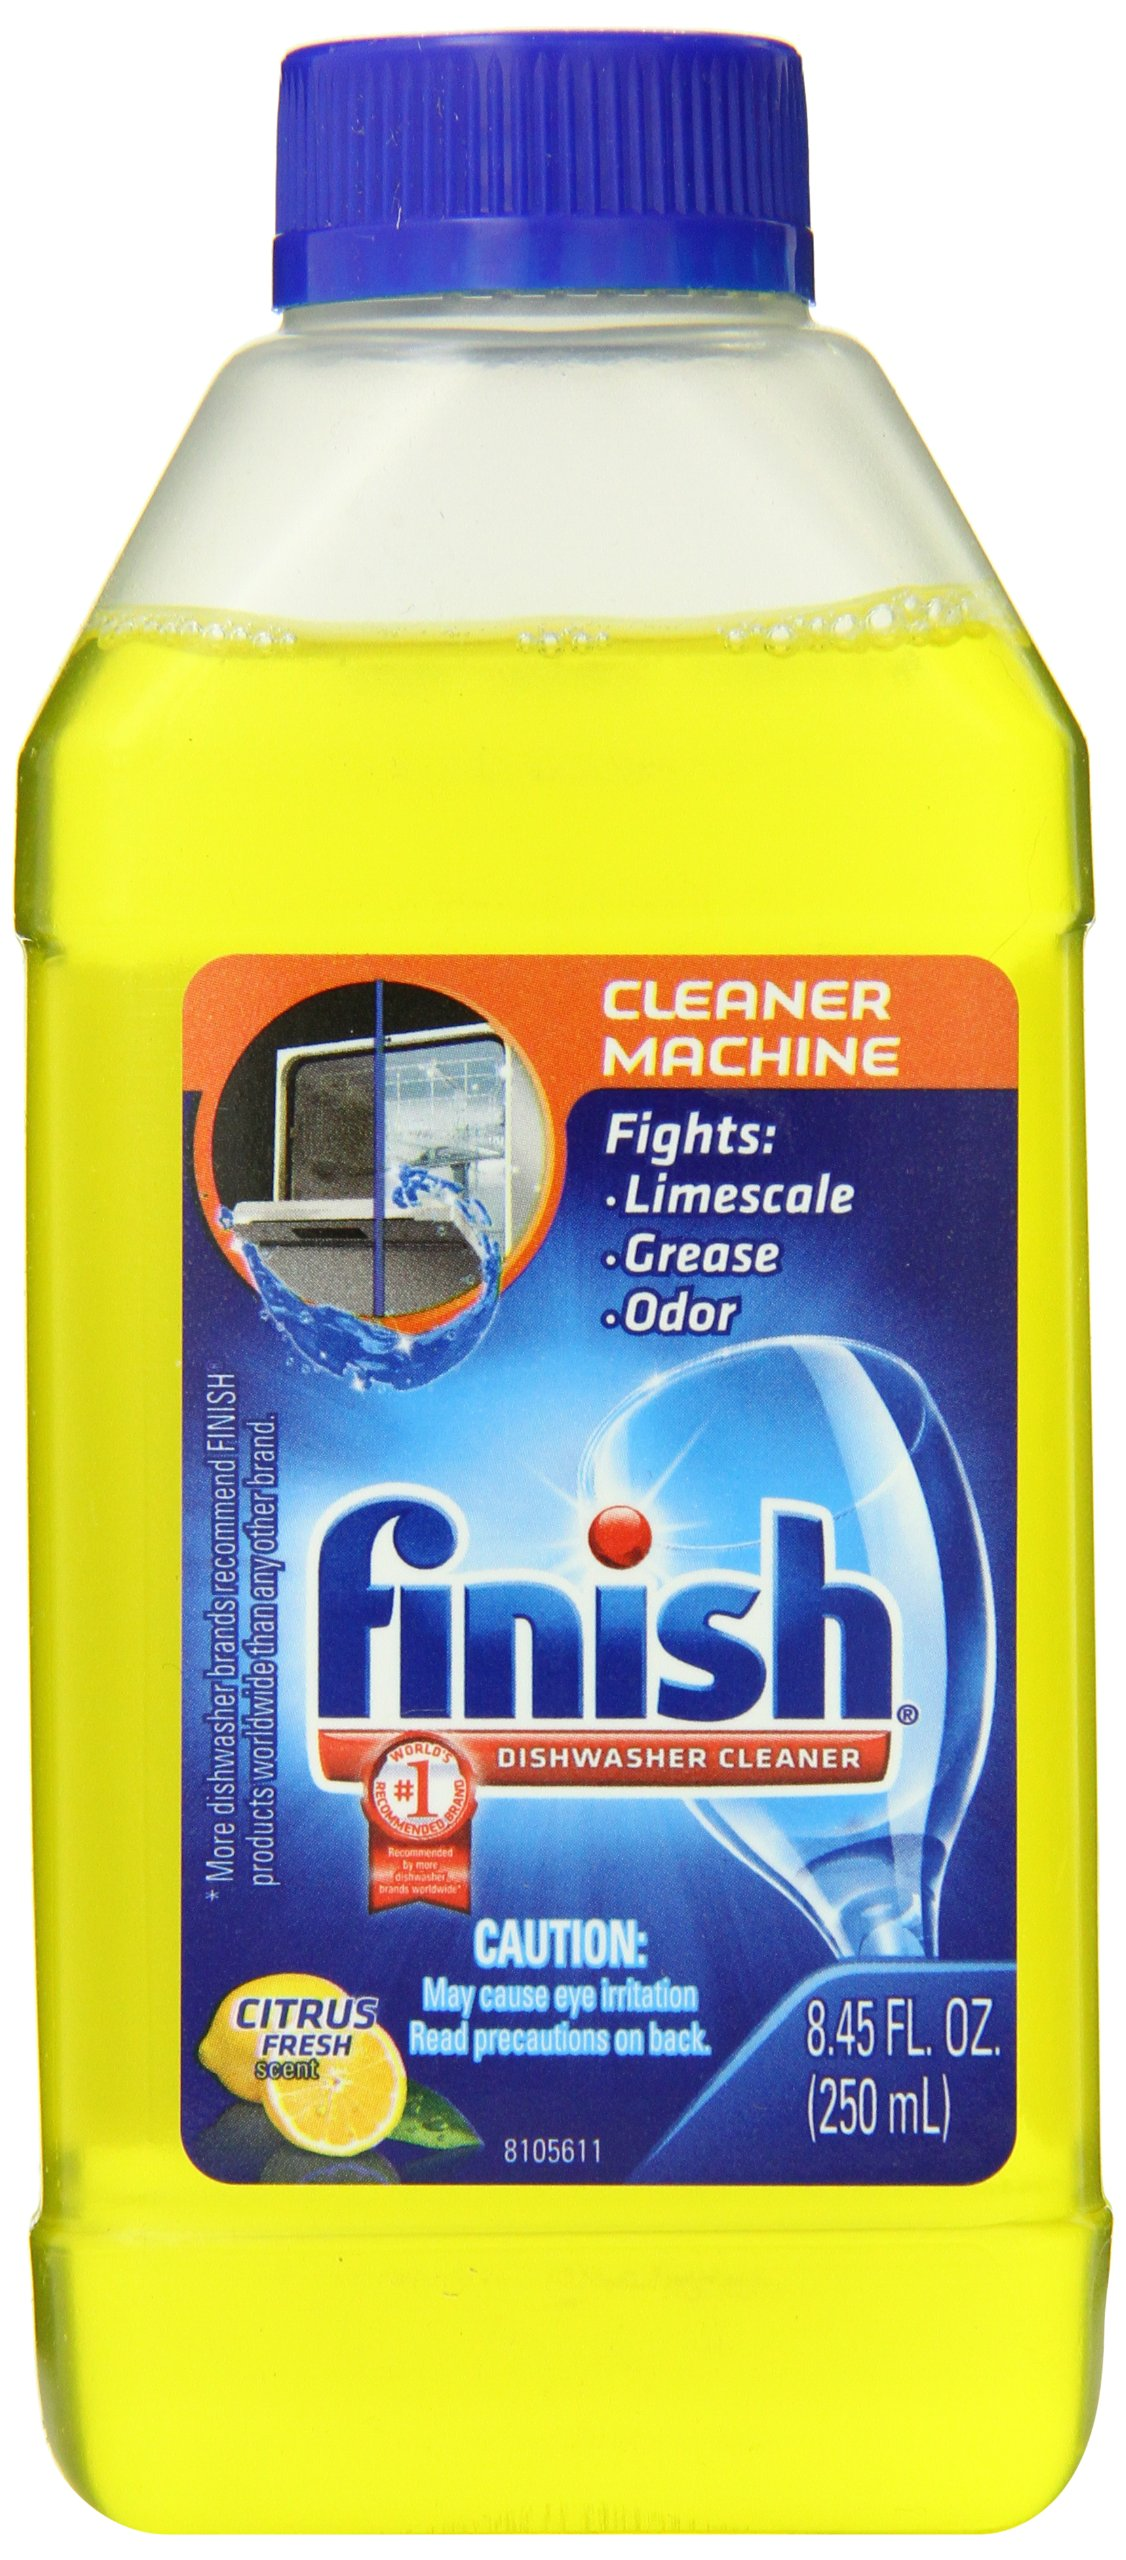 Finish Dishwasher Machine Cleaner, 50.7 fl oz (6 Bottles x 8.45 oz), Dual Action To Fight Grease & Limescale by Finish